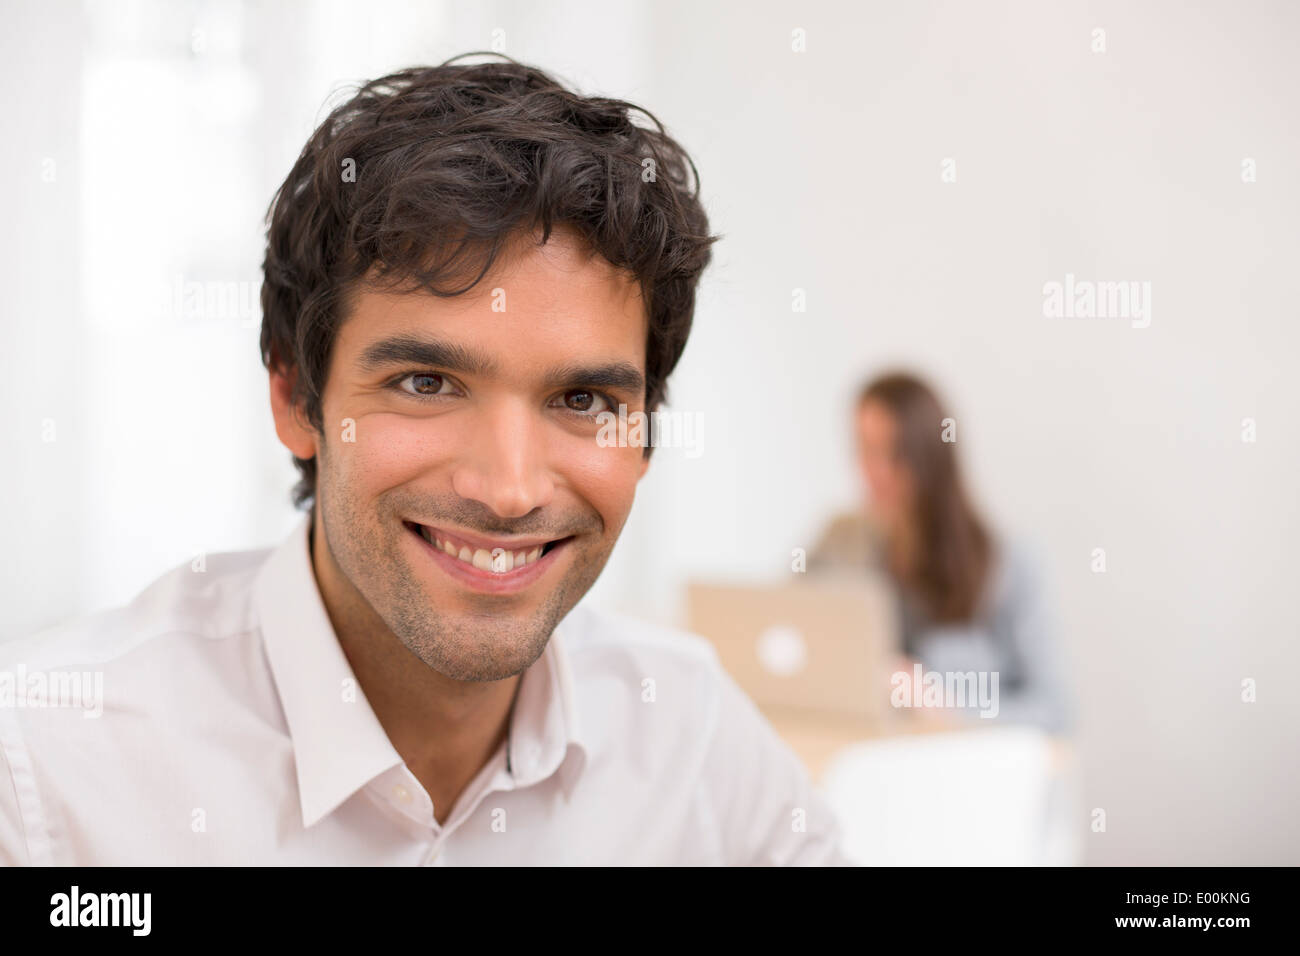 Male business handsome pc desk colleagues background - Stock Image